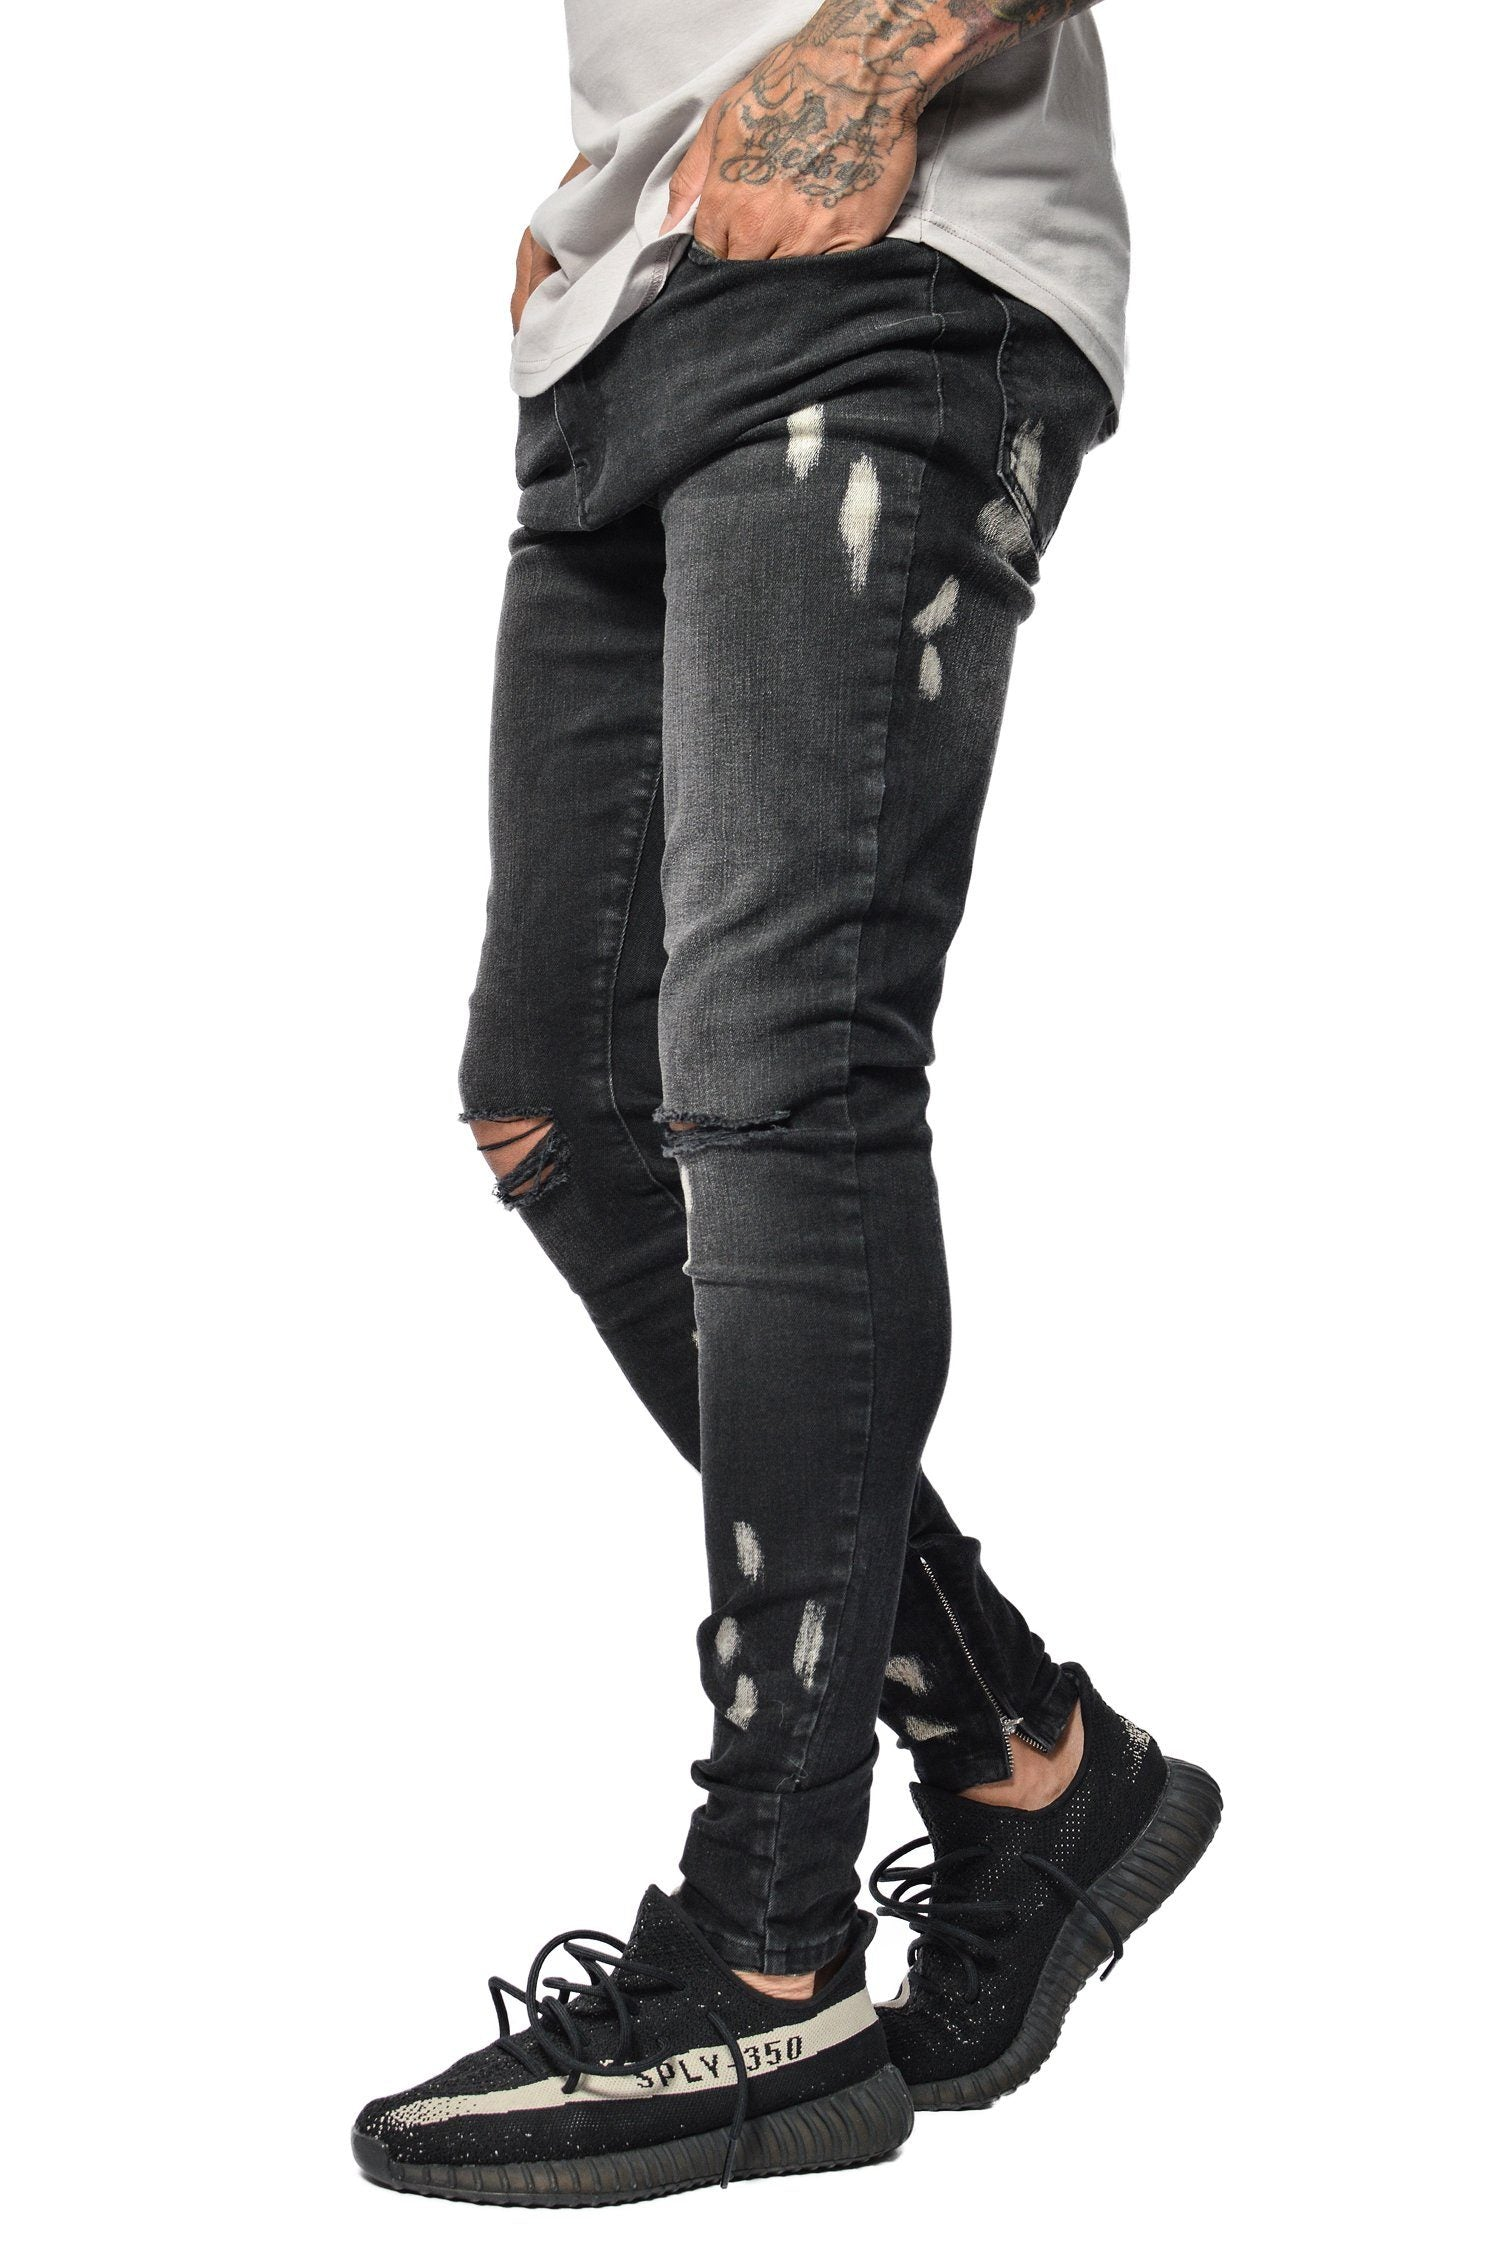 Bruno Bleached Denim Black - PEGADOR - Dominate the Hype